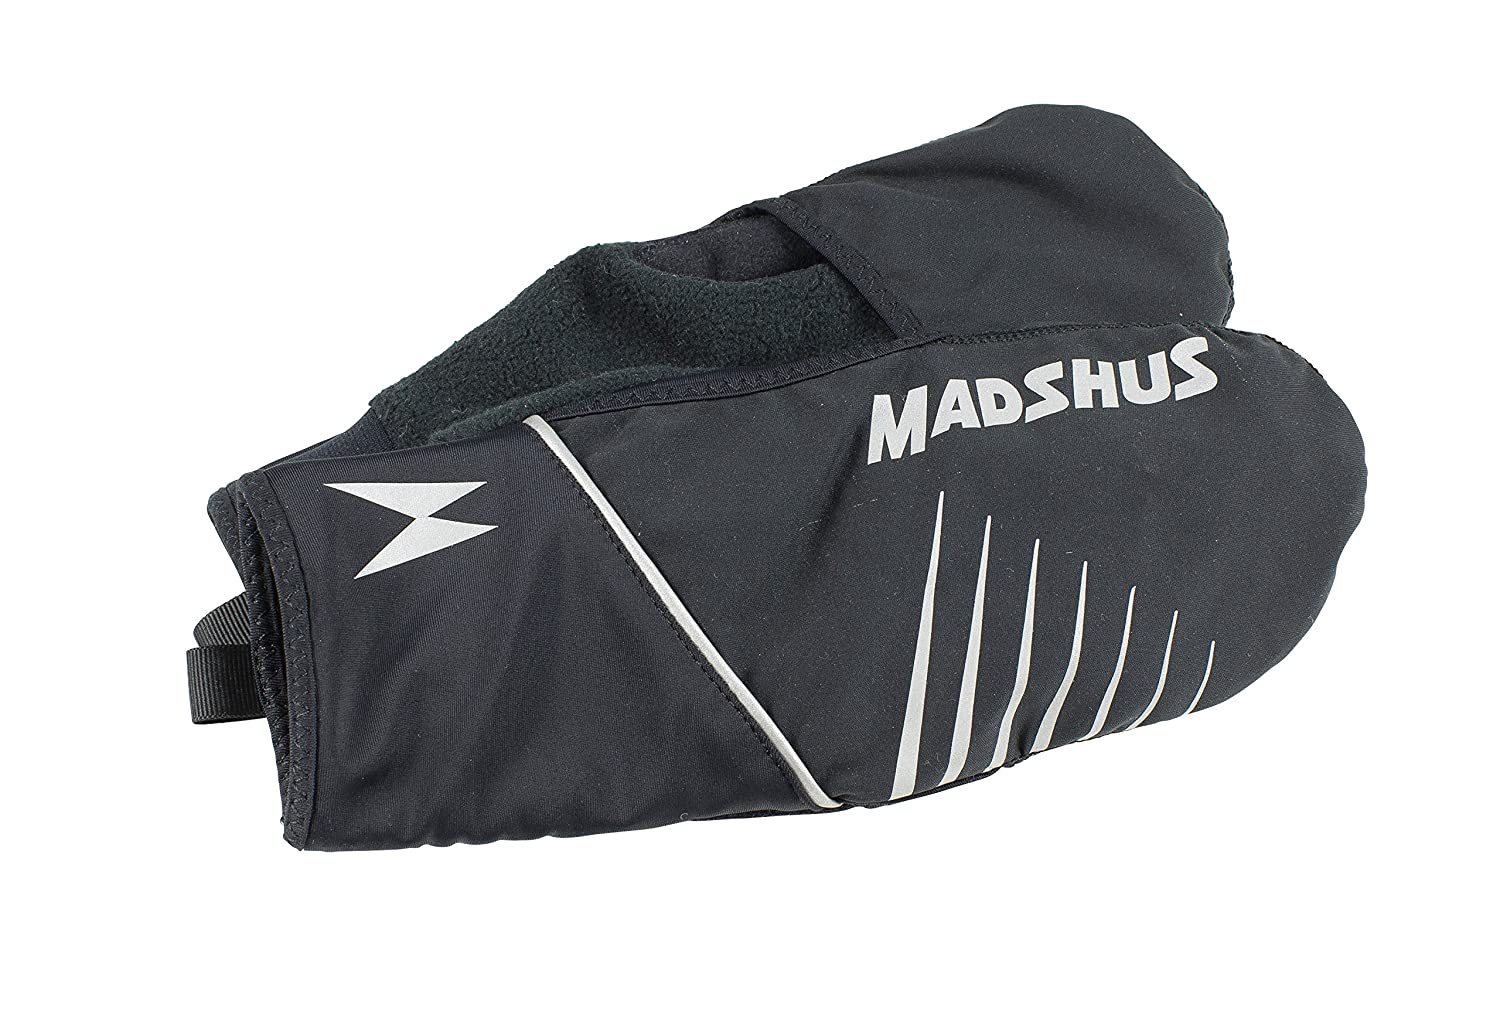 Madshus Glove Cover